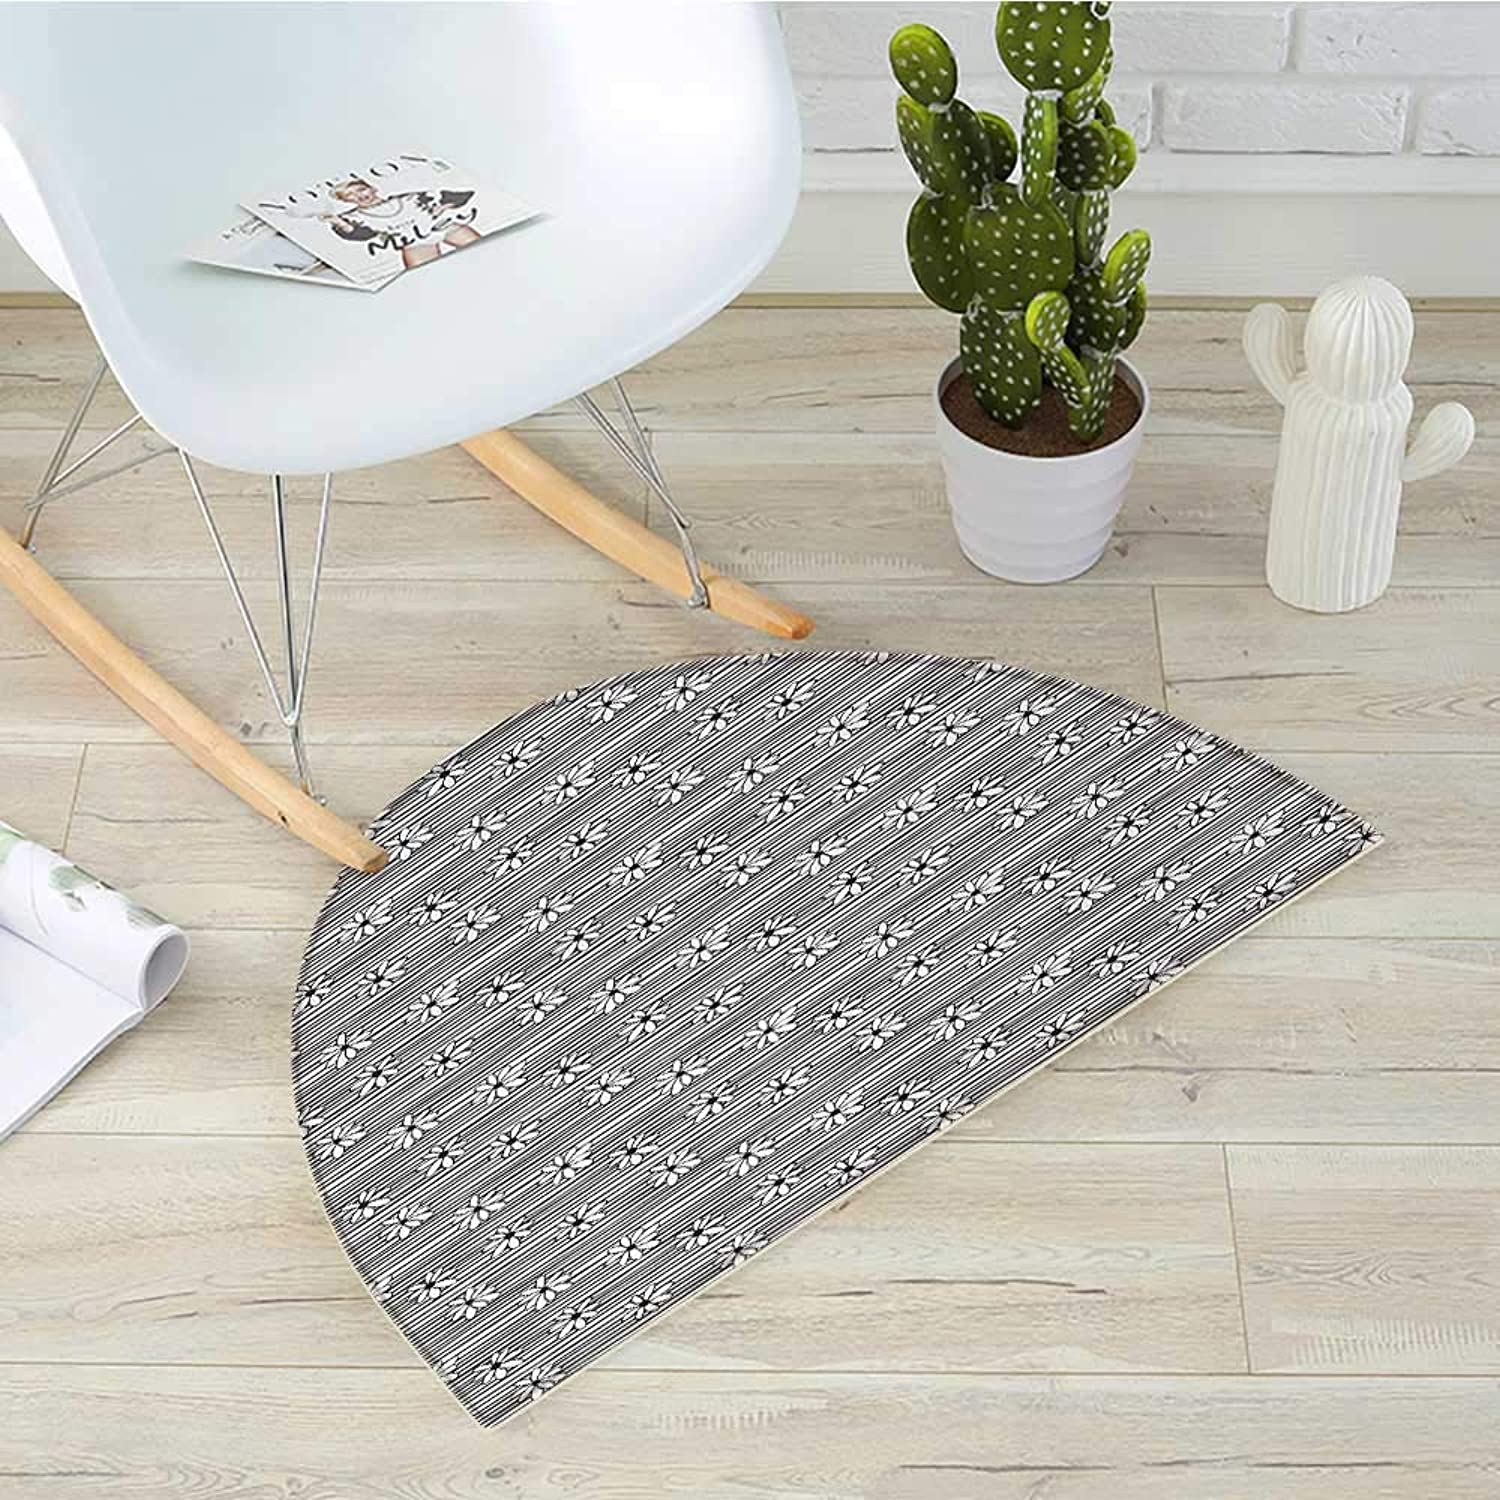 Black and White Semicircle Doormat Horizontal Lines Pattern with Monochrome Flowers Doodle Style Composition Halfmoon doormats H 39.3  xD 59  Black White